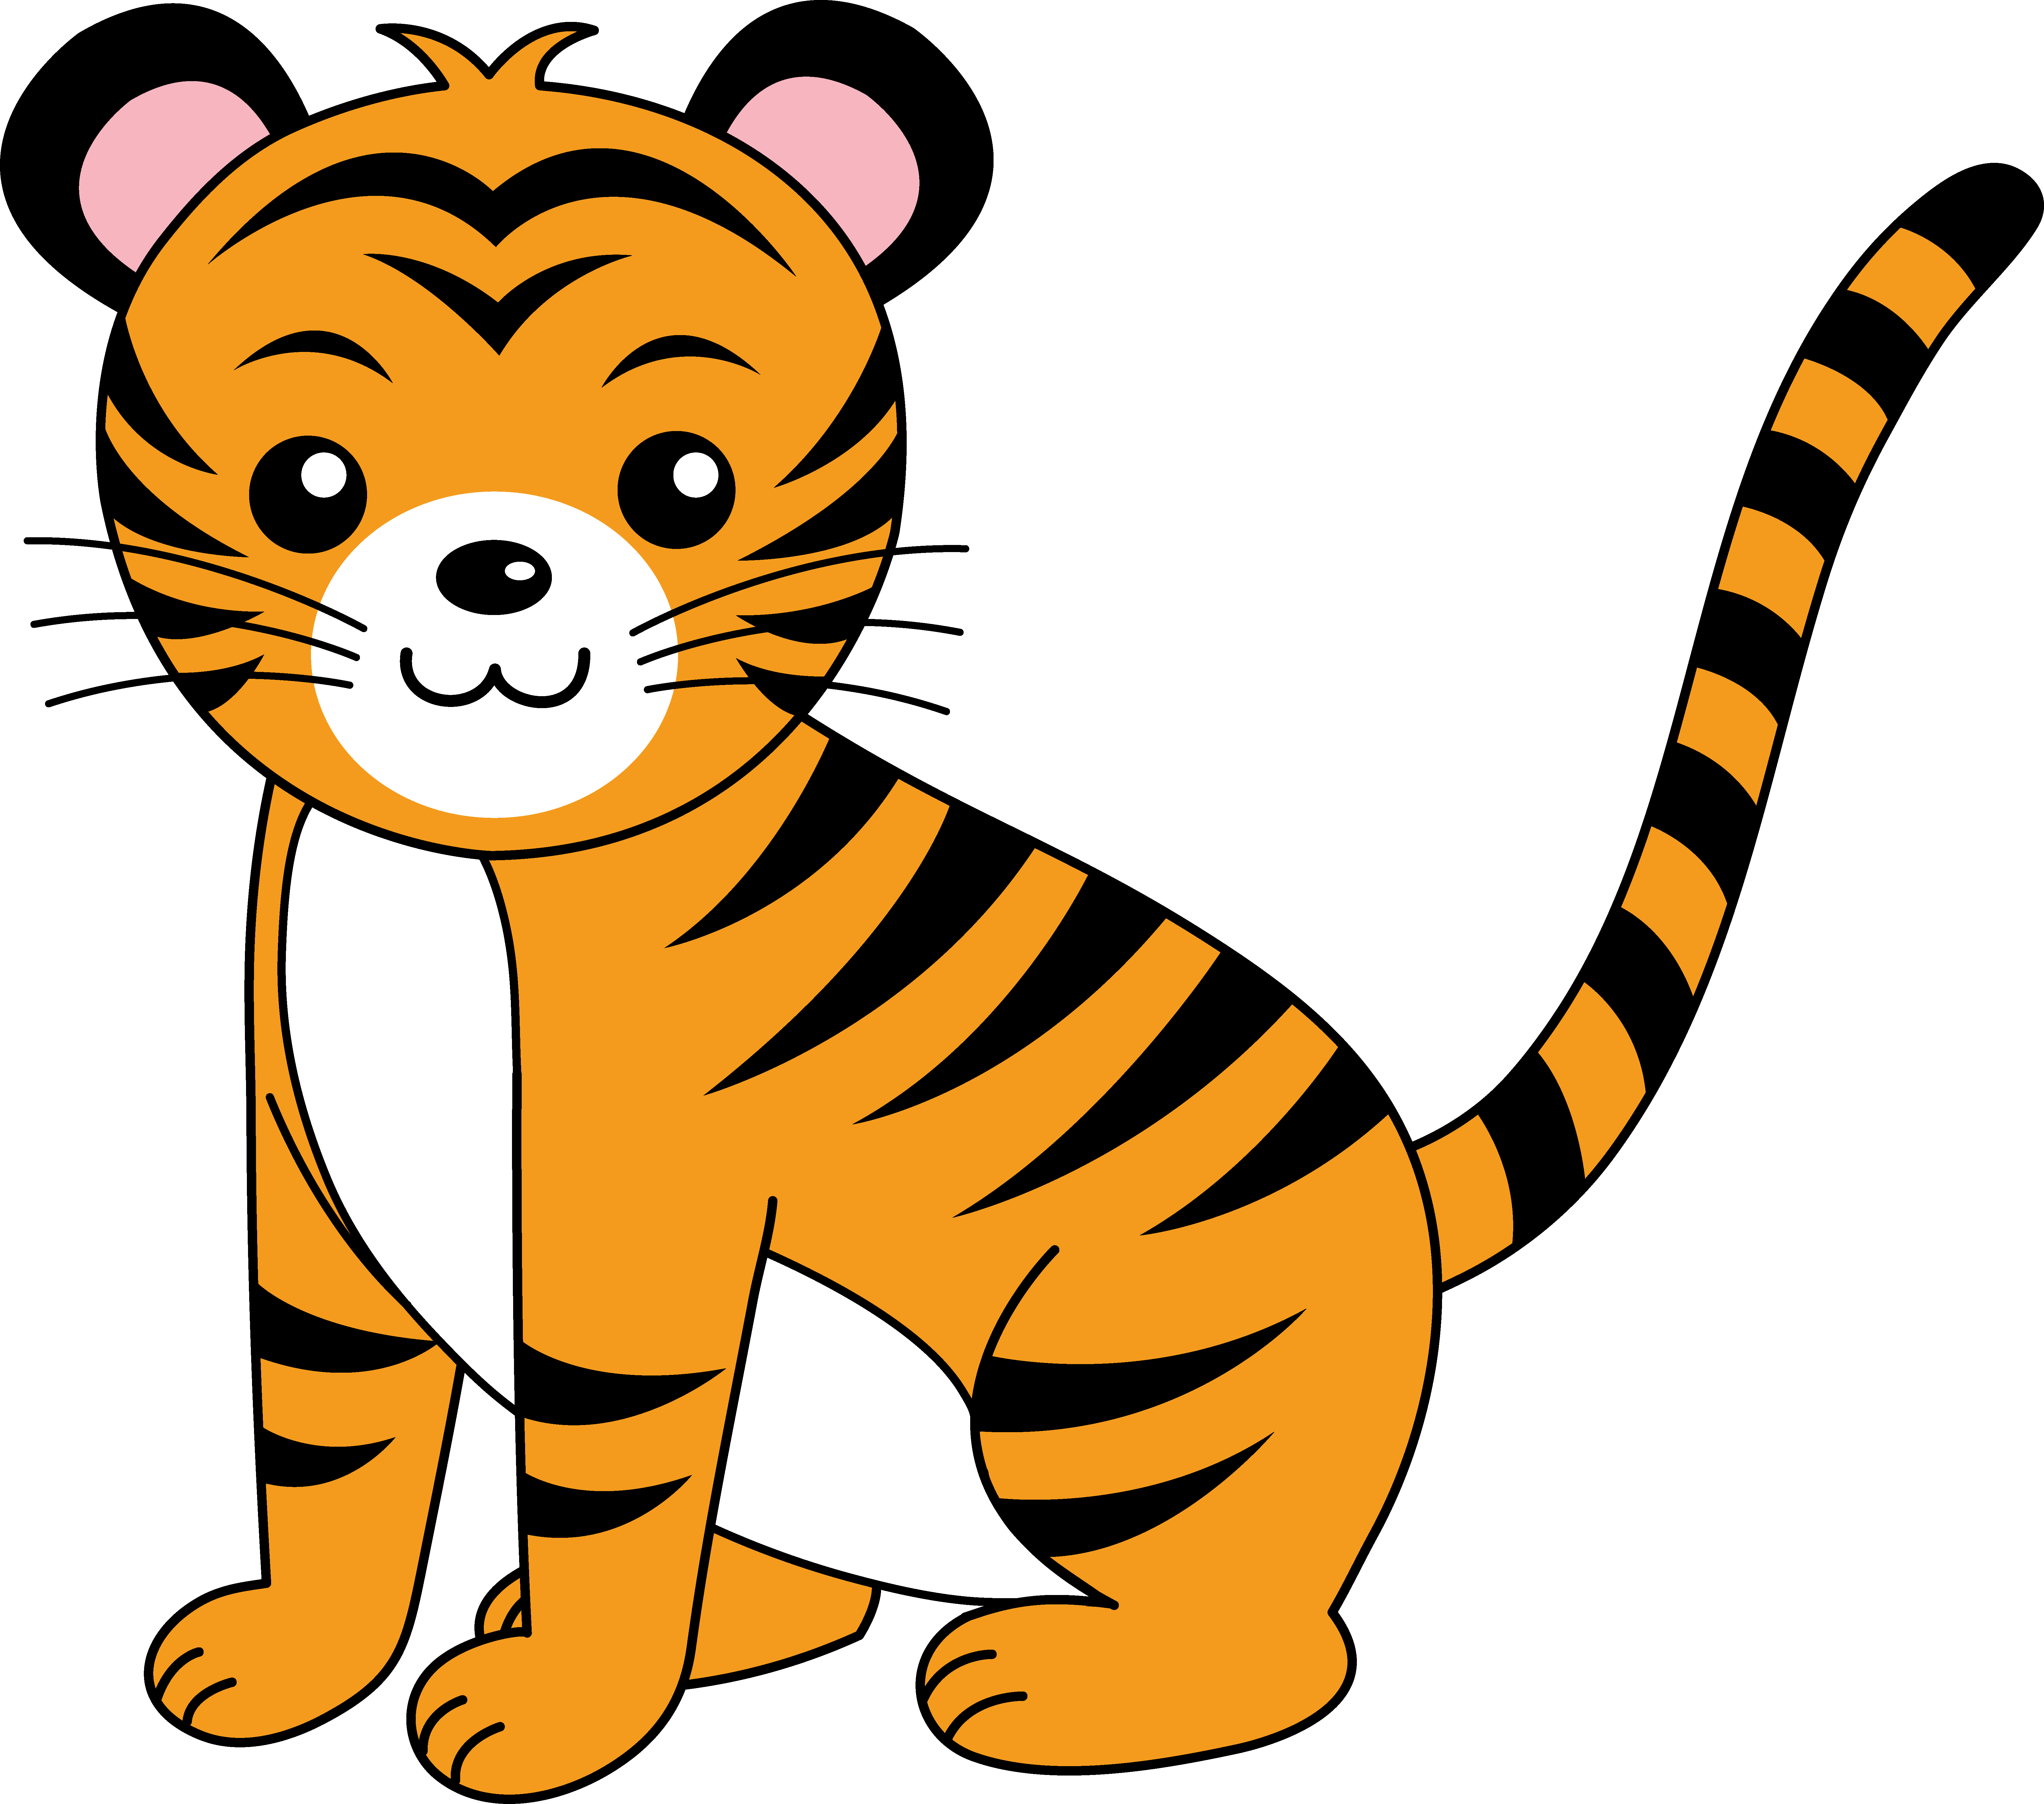 free tiger clipart at getdrawings com free for personal use free rh getdrawings com clip art tiger in purple and gold clip art tiger in purple and gold